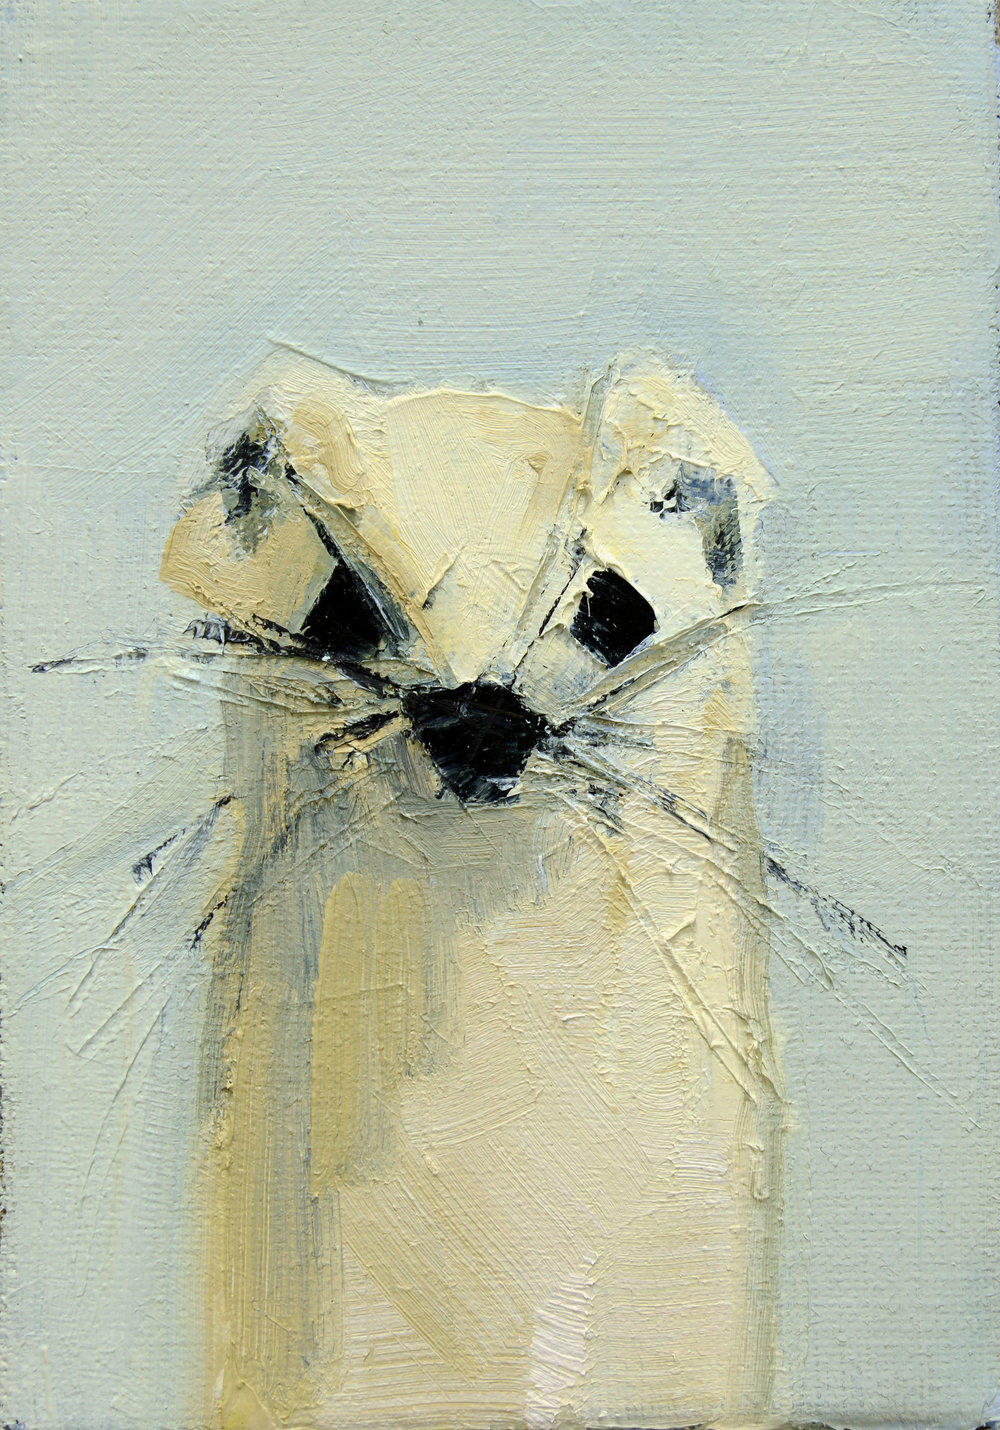 ERMINE NO. 2   -PRIVATE COLLECTION-  7 x 5 inches  oil and wax on linen